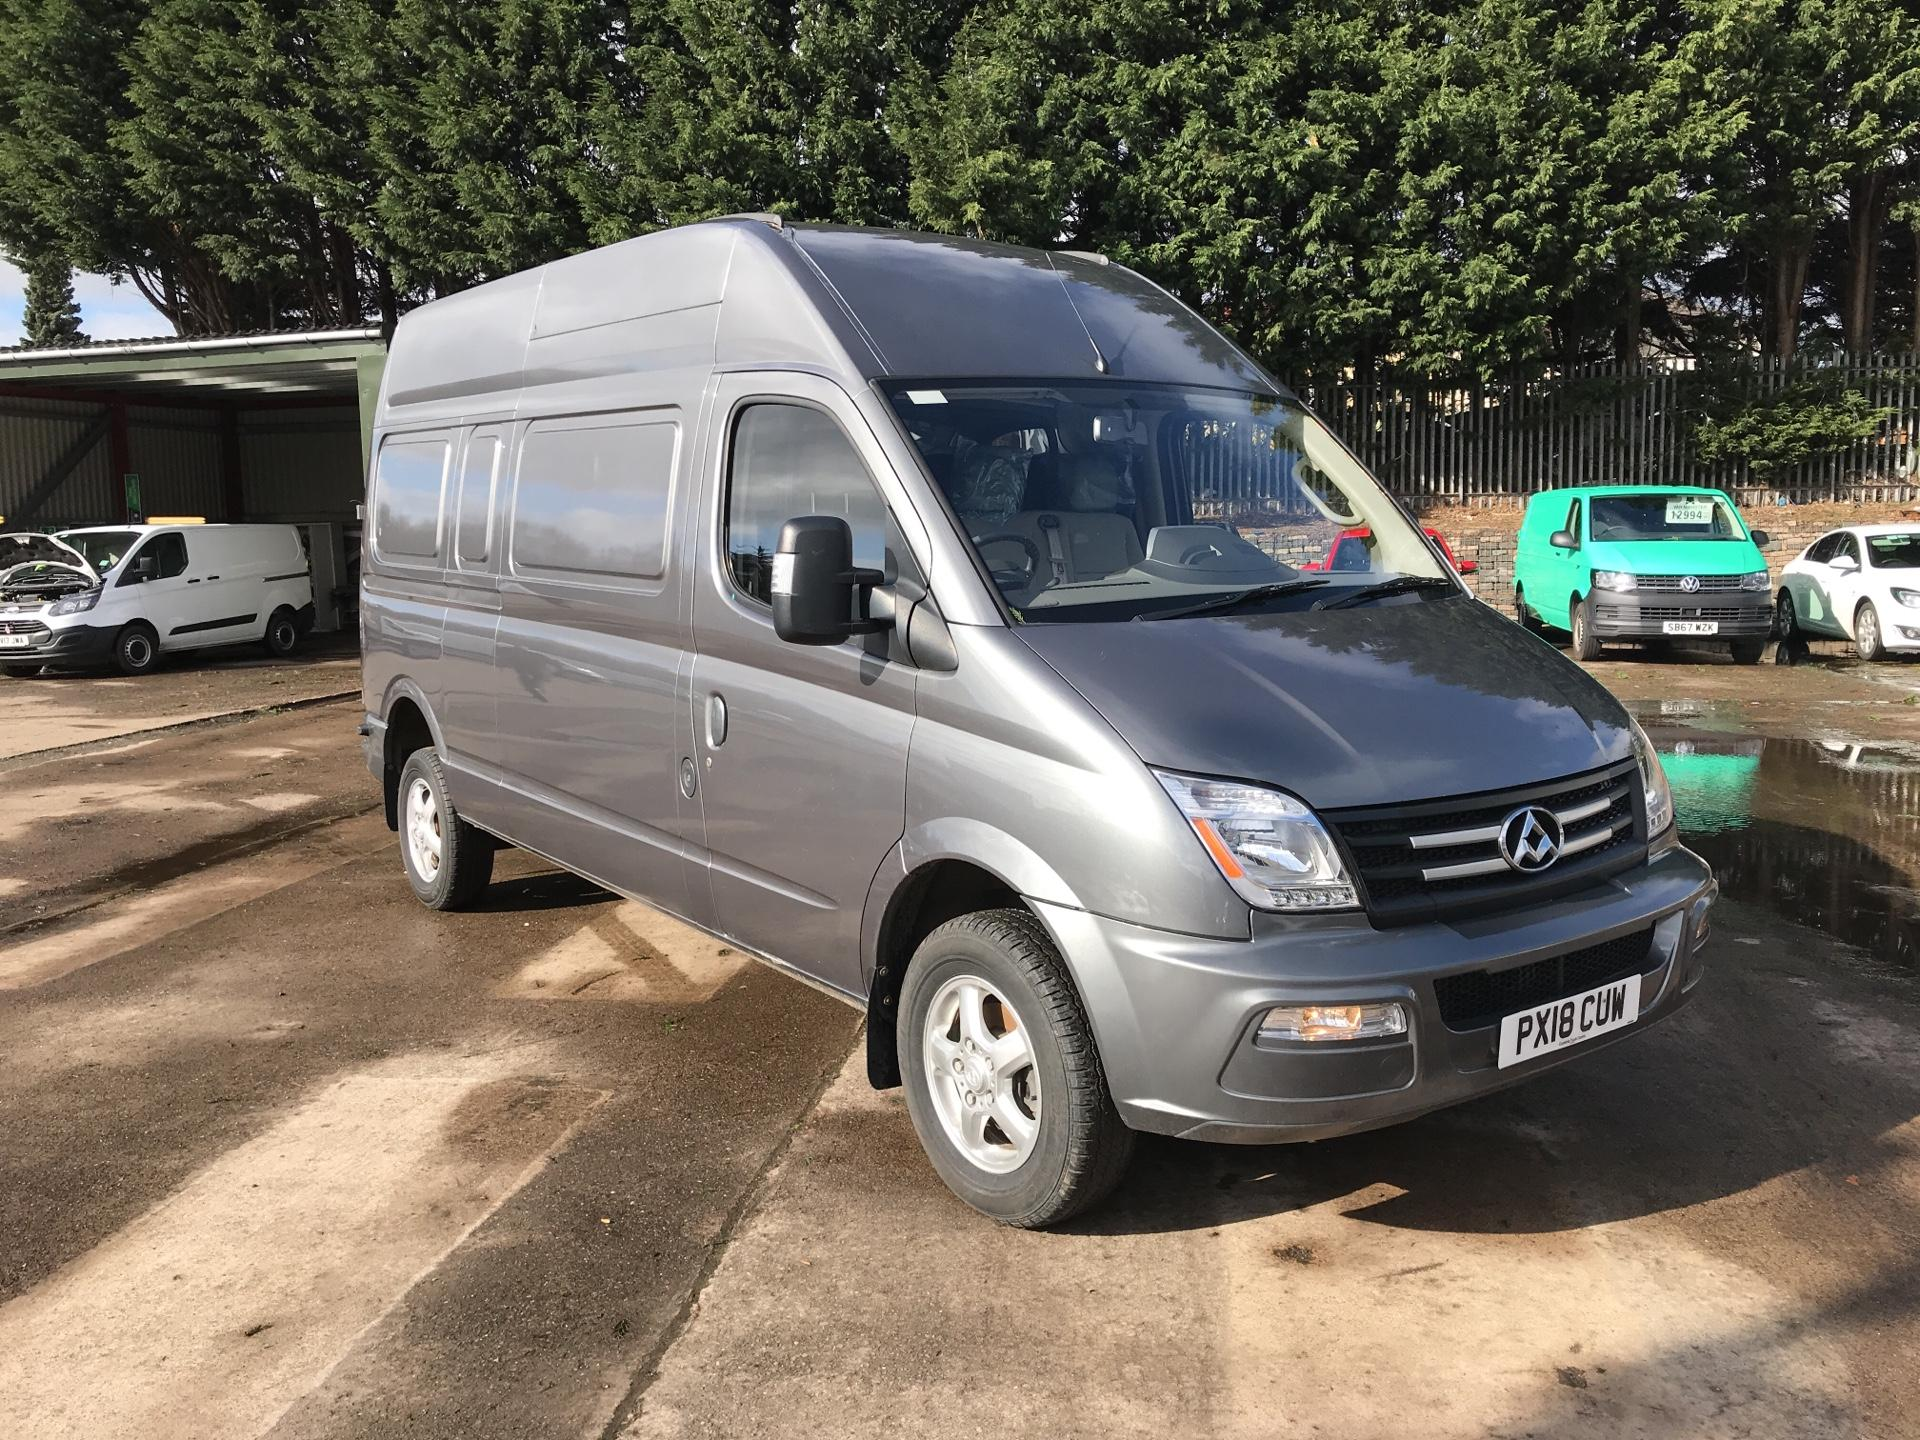 2018 Ldv V80 LWB 2.5 HIGH ROOF EURO 5 (PX18CUW)